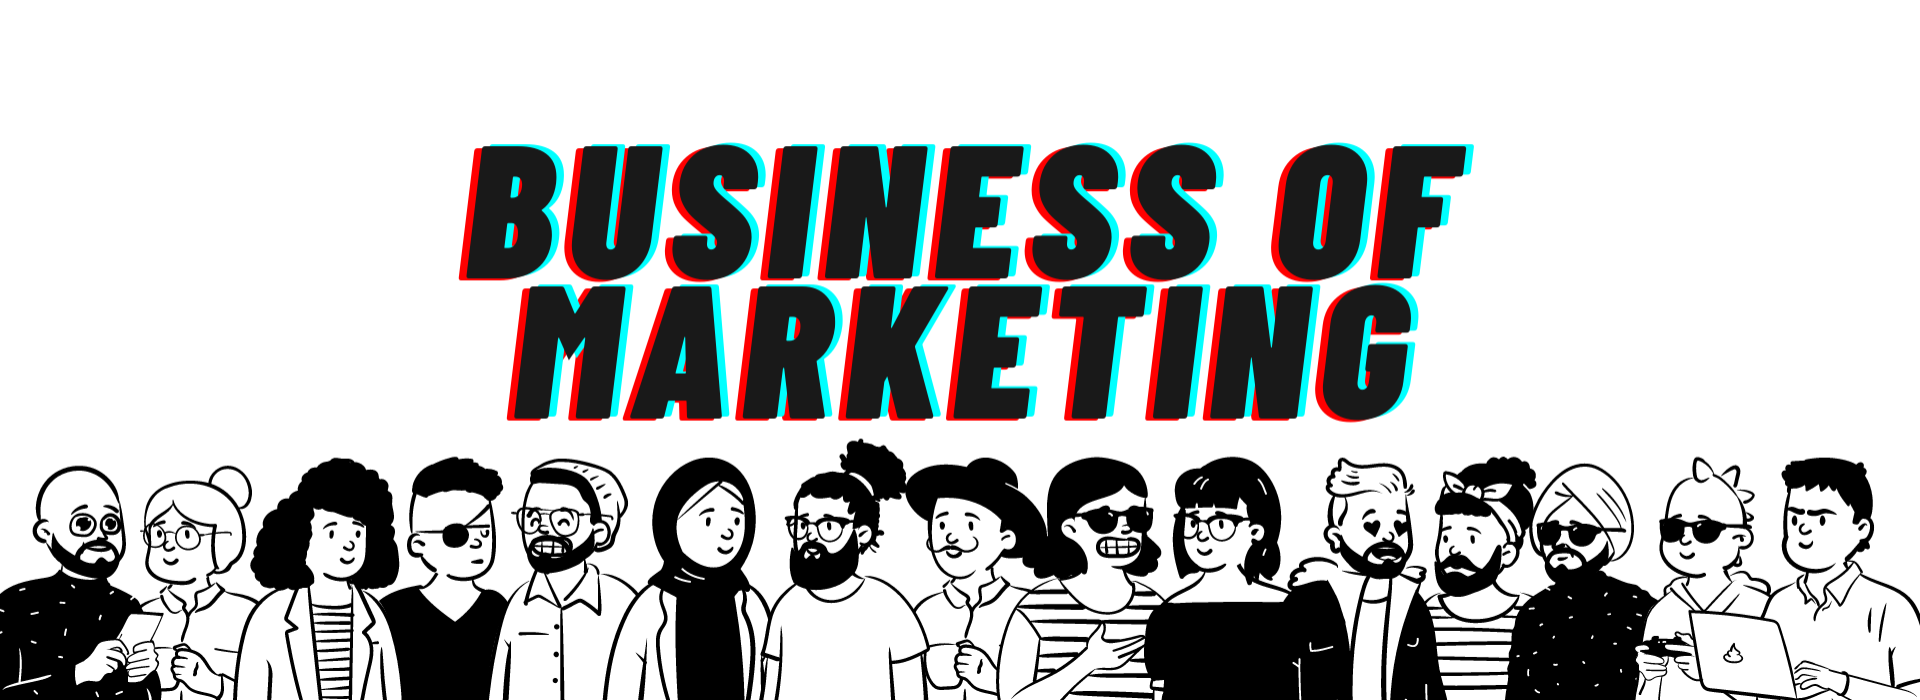 Business of Marketing